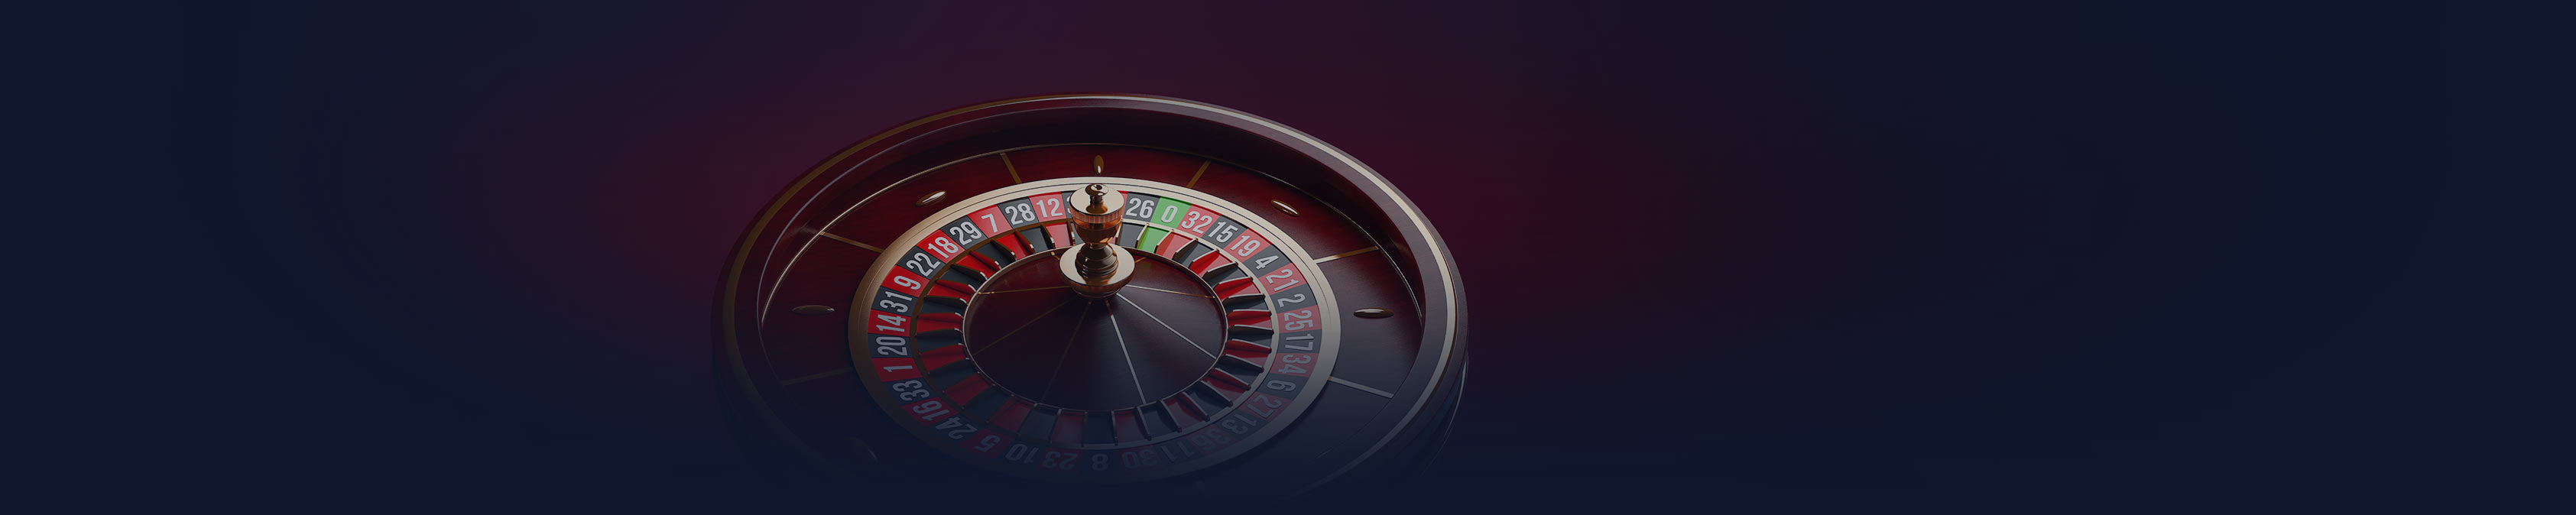 Рулетка казино игра casinosearch.bg